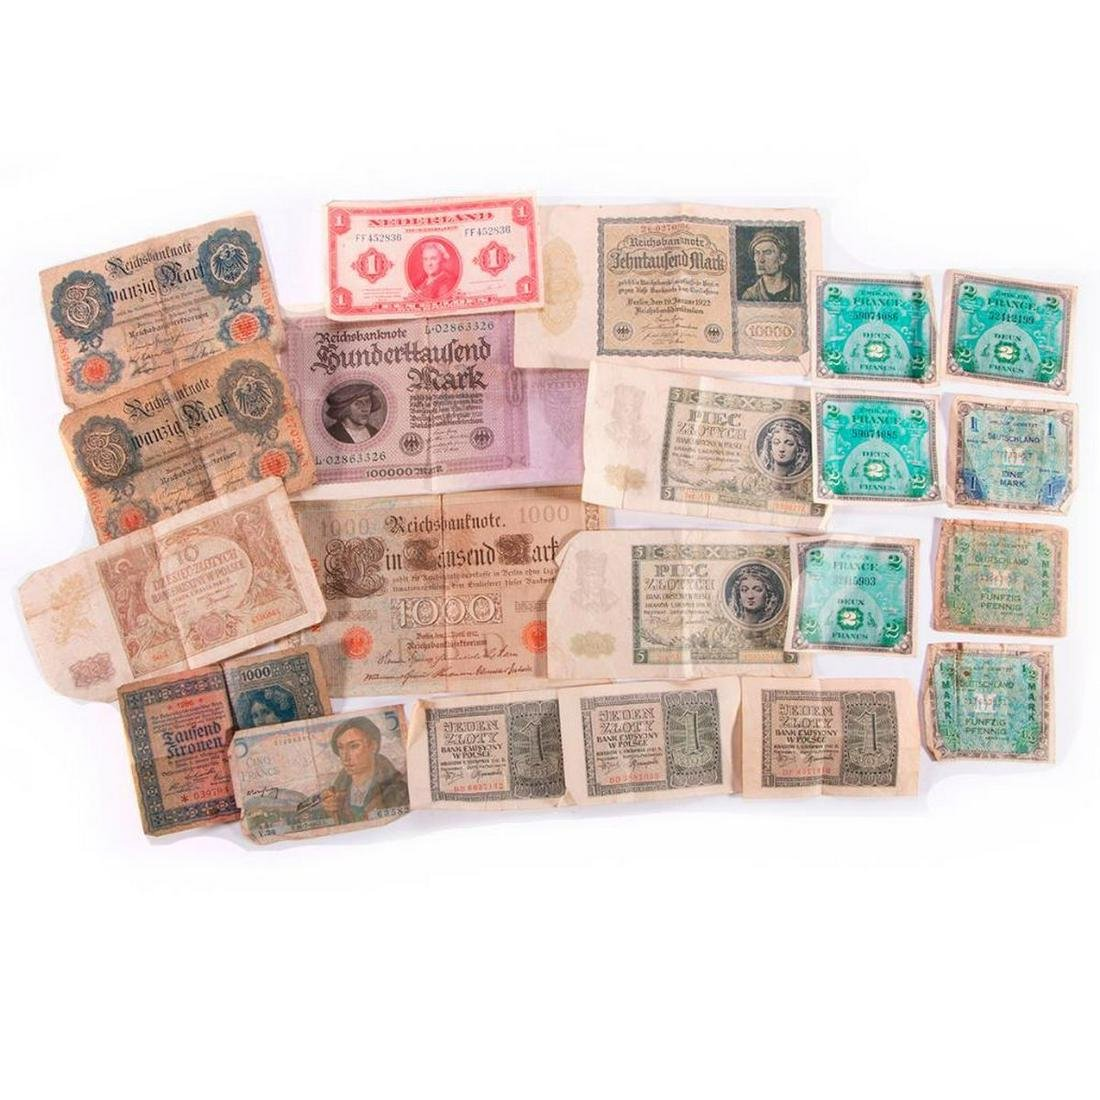 Lot of vintage European currency.